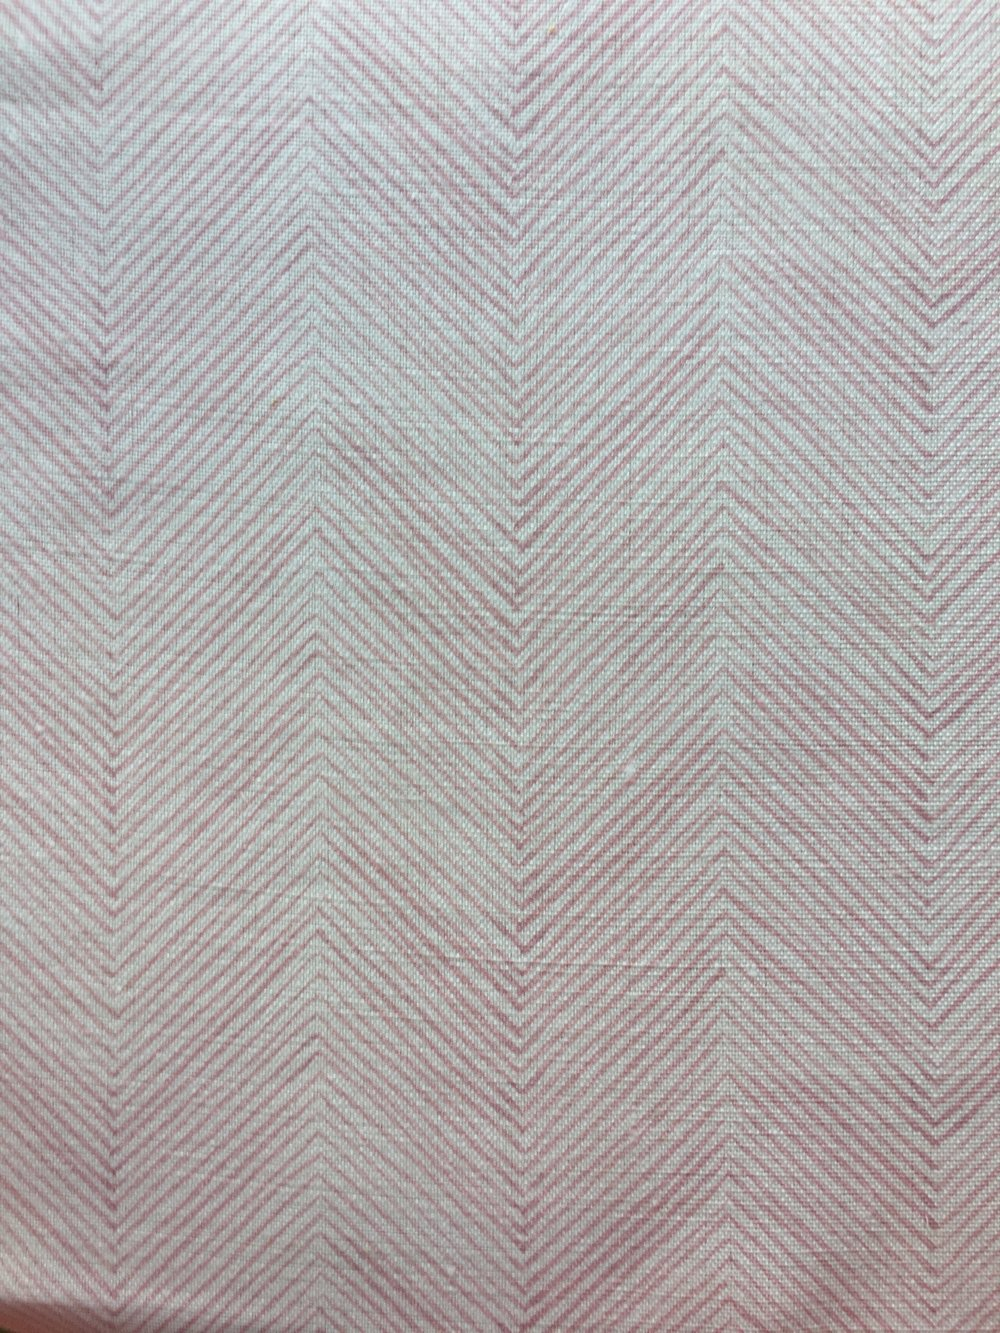 herringbone faded pink